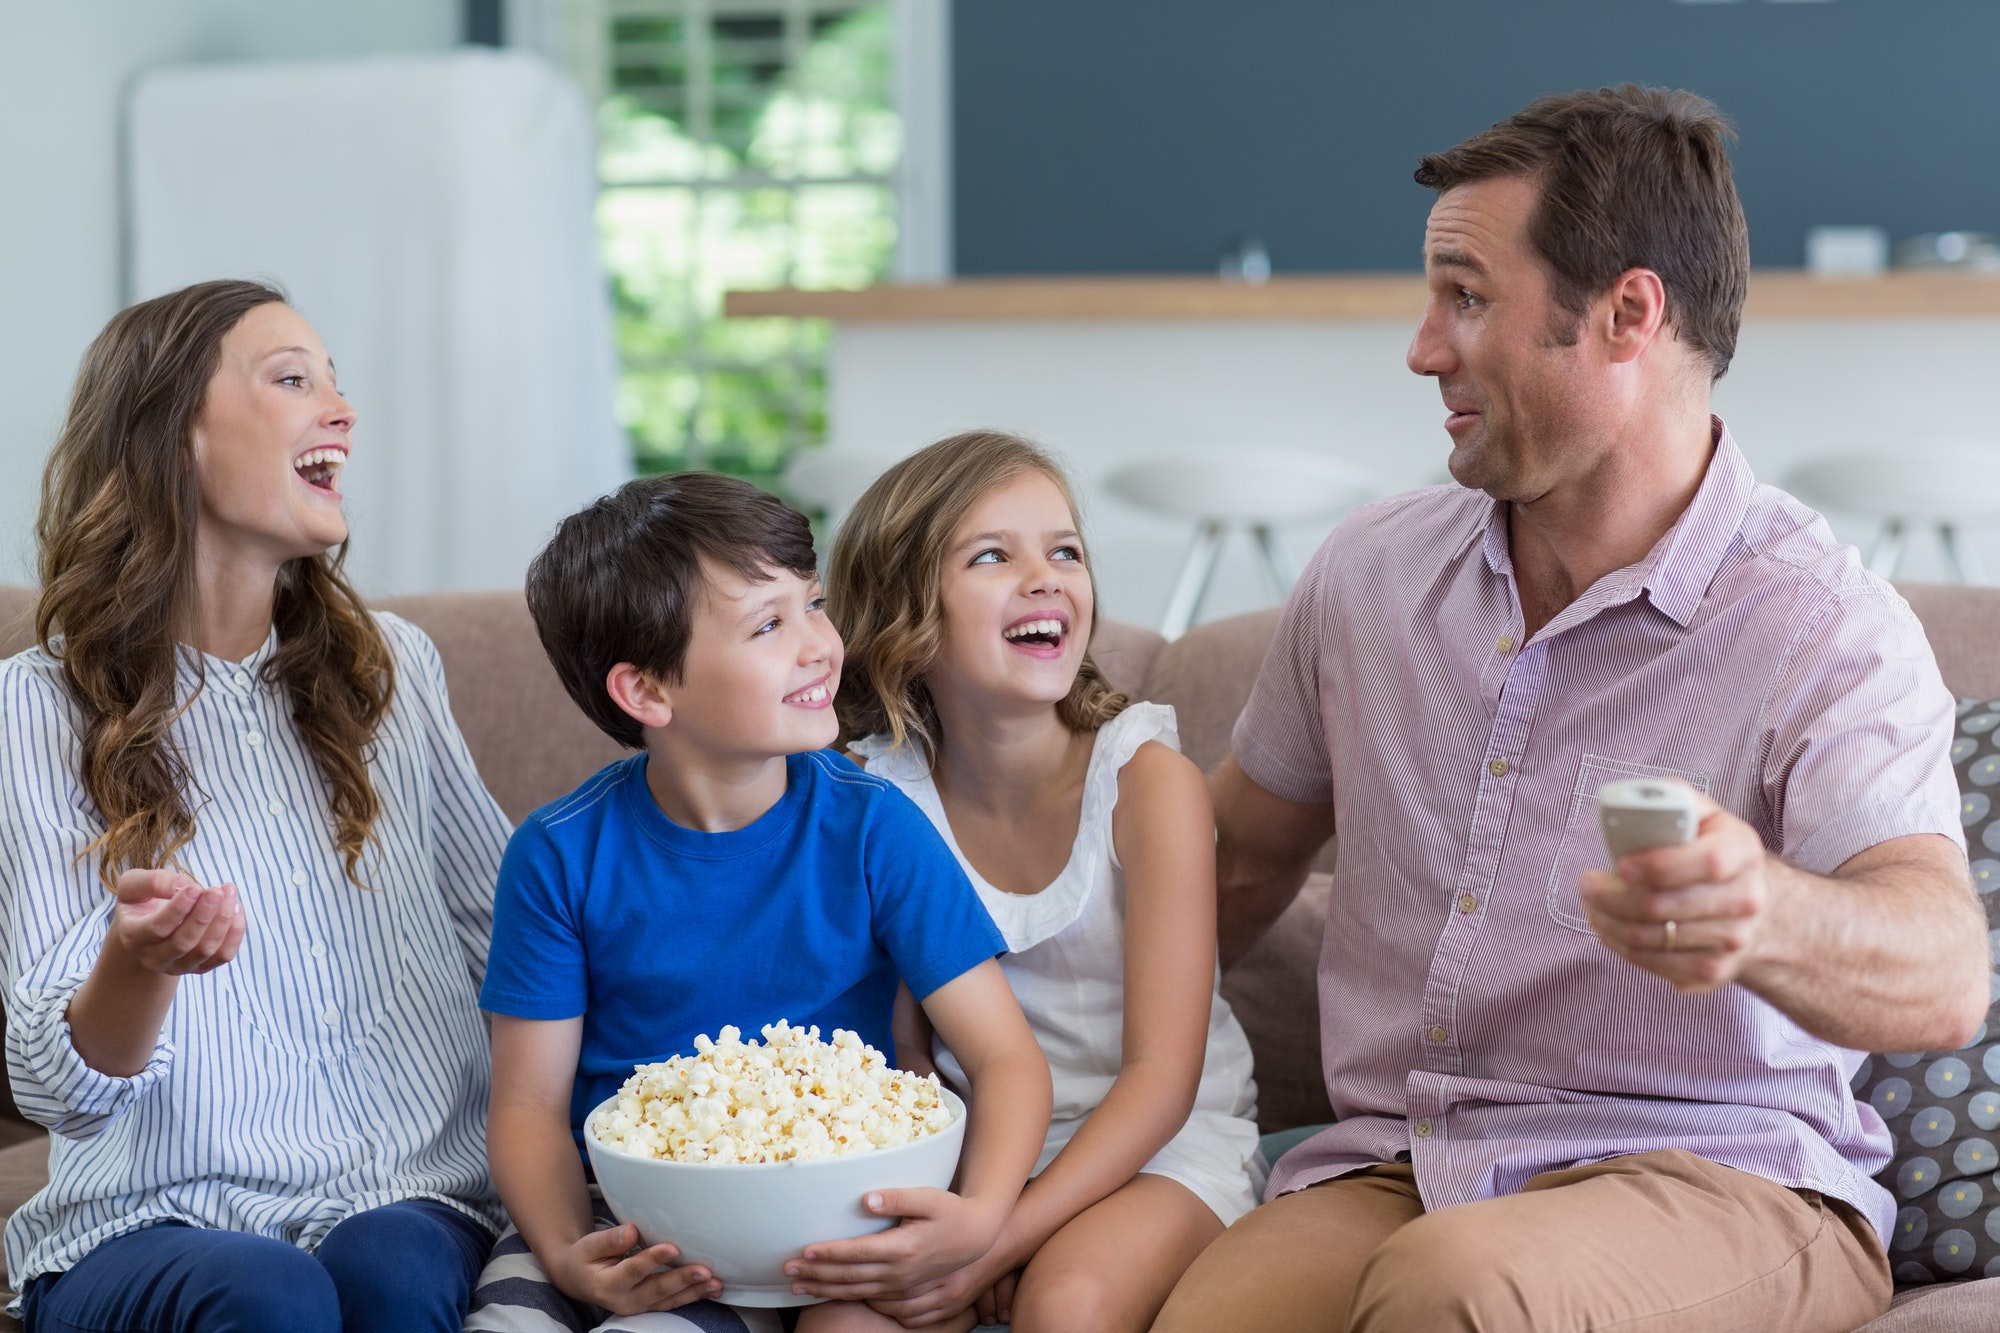 Family watching tv and eating popcorn in living room at home